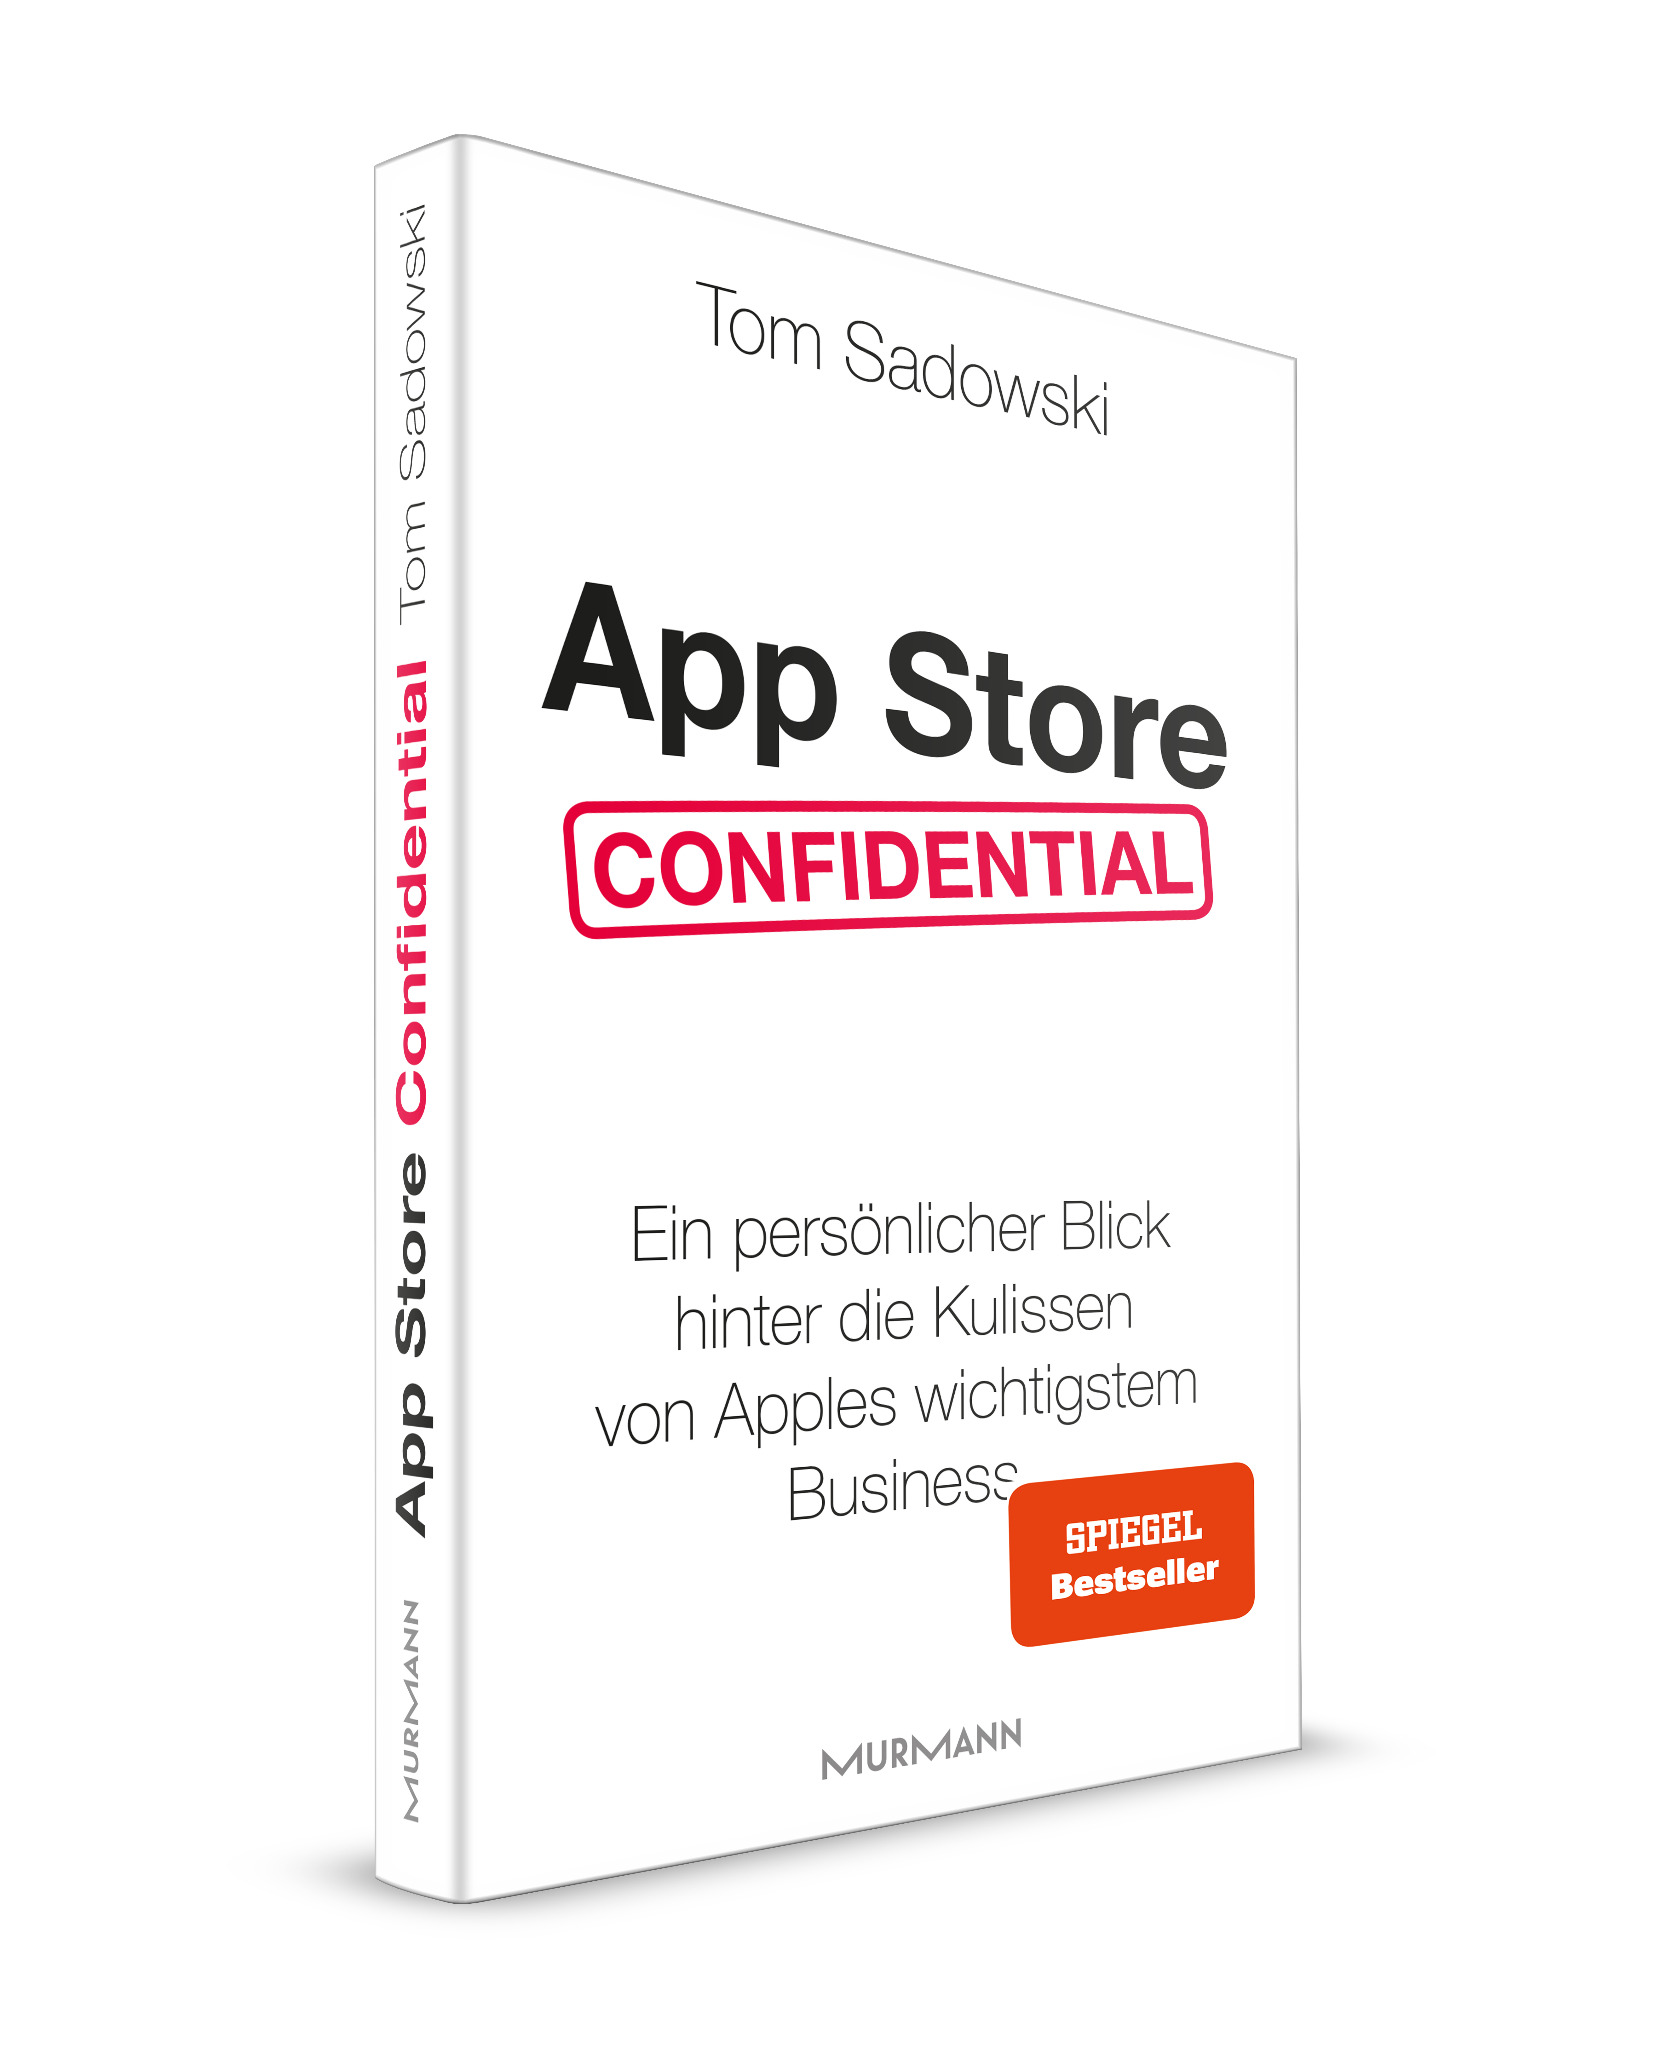 App Store Confidential / Tom Sadowski (E-Book)